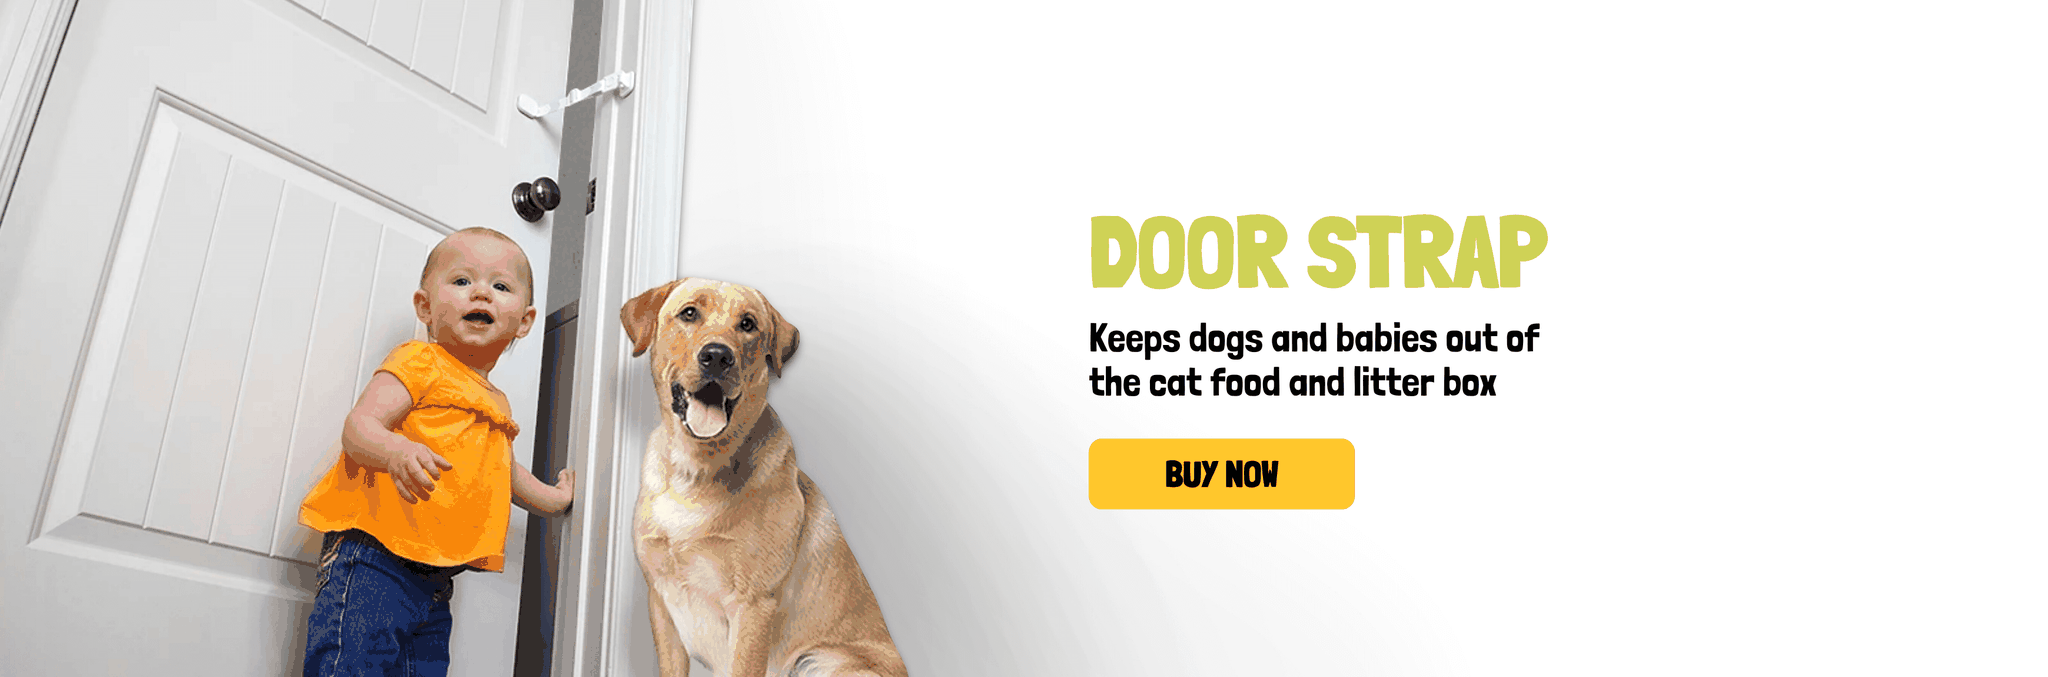 Door Buddy Door Strap Keeps Dogs and Babies out of Cat Food and Litter Box